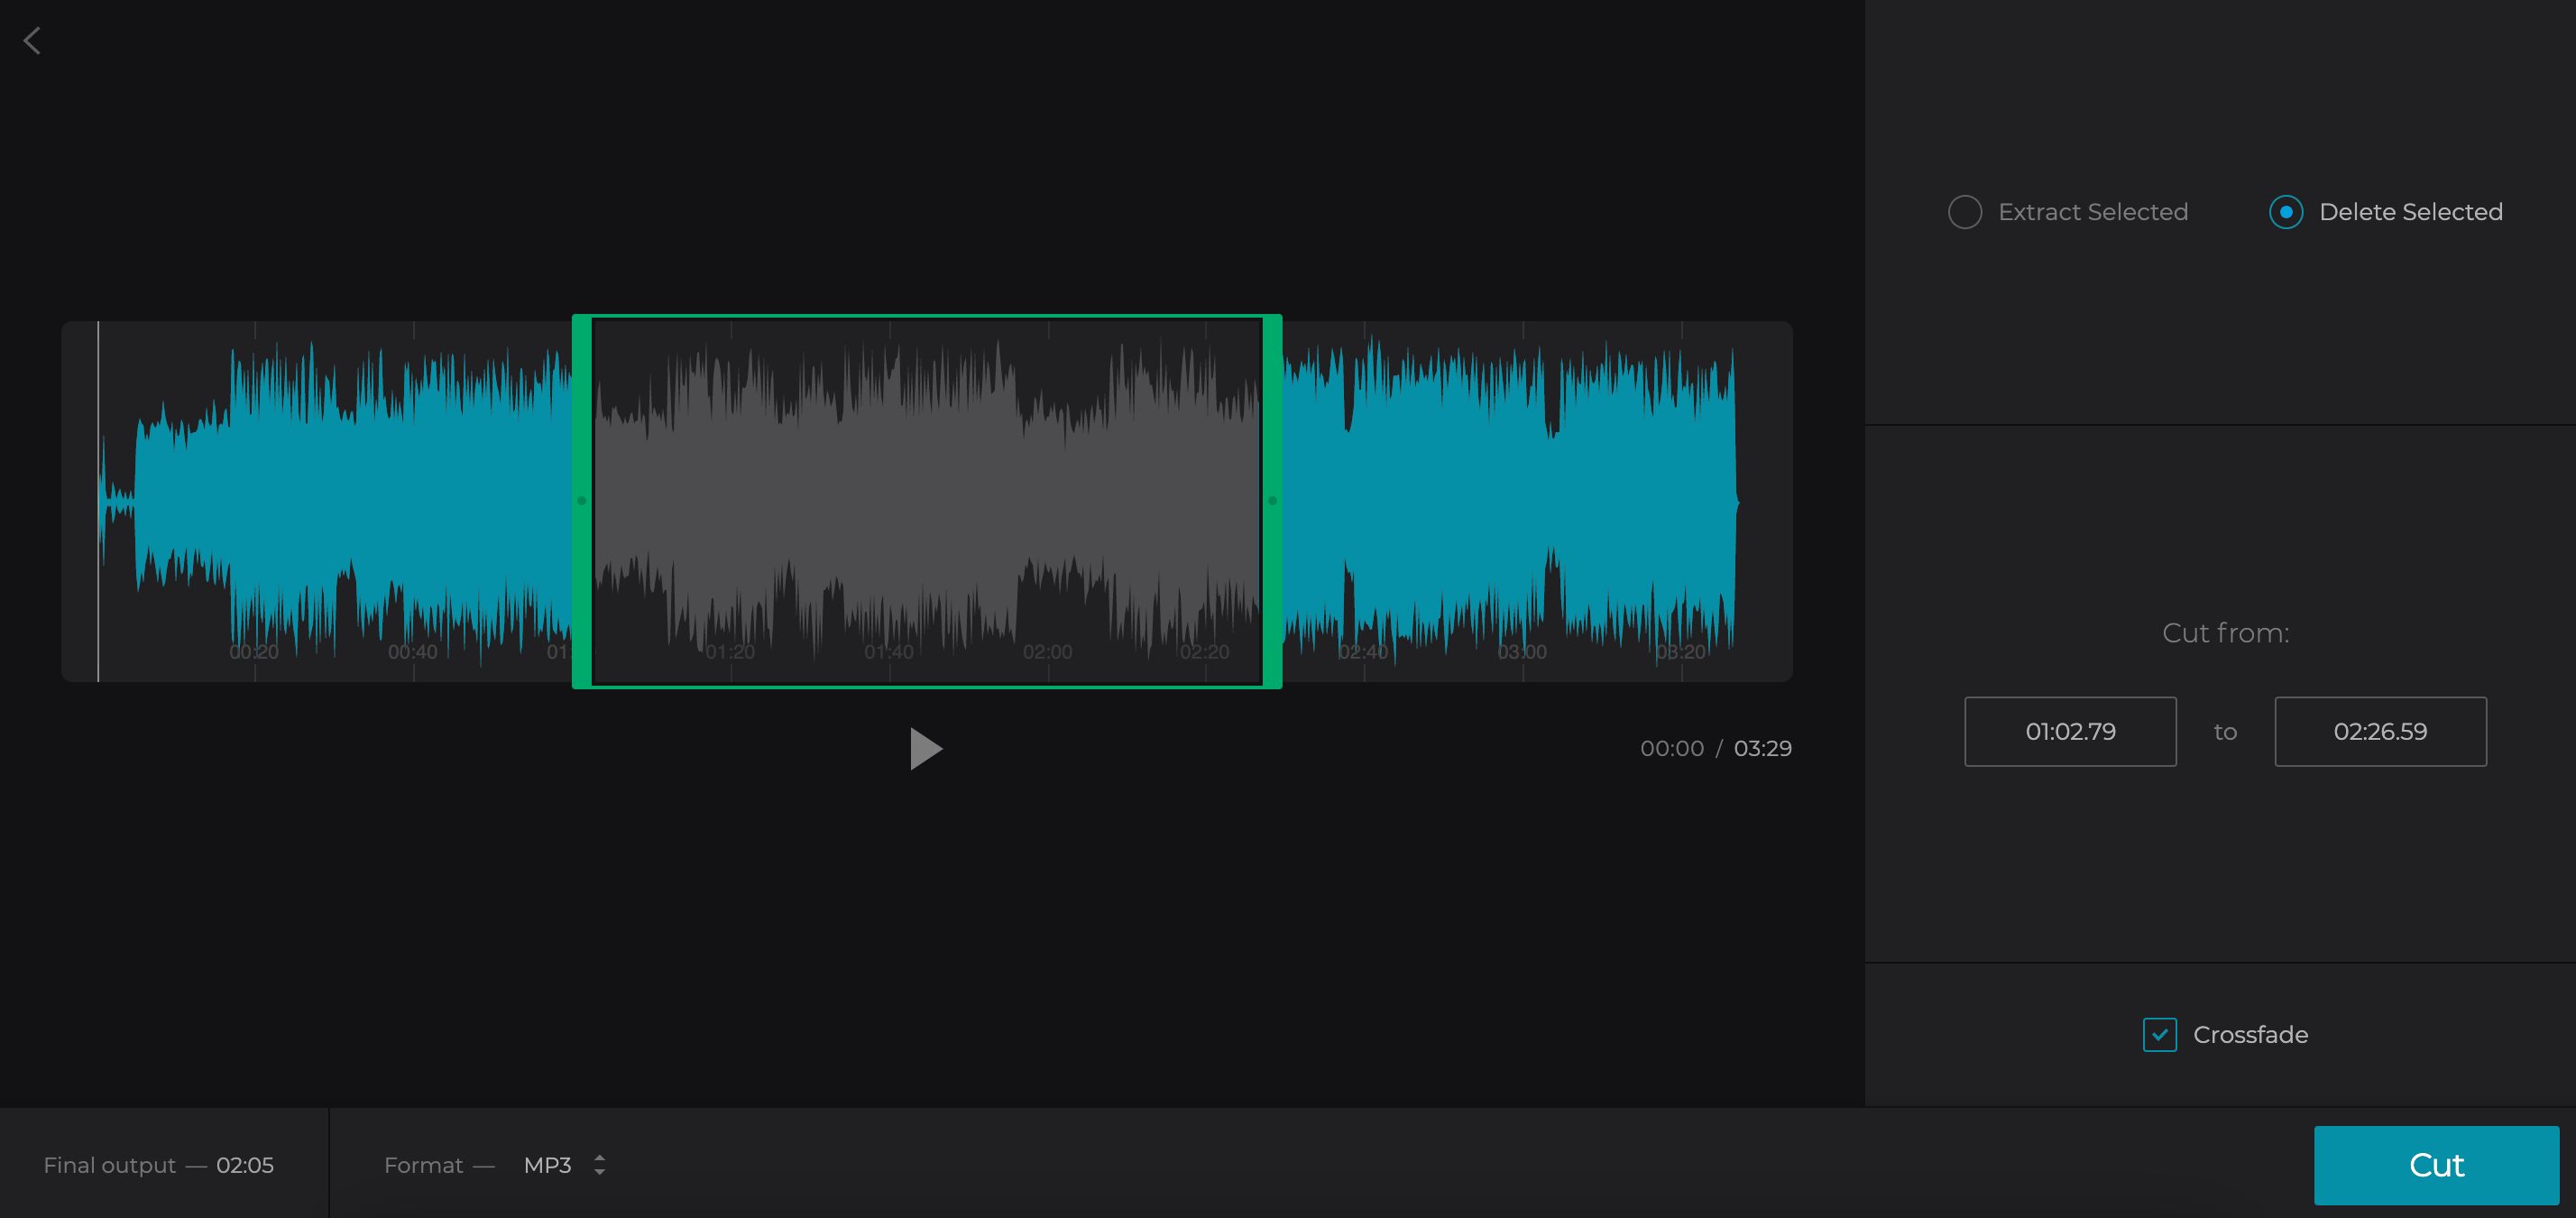 Cut out part of song extracted from MP4